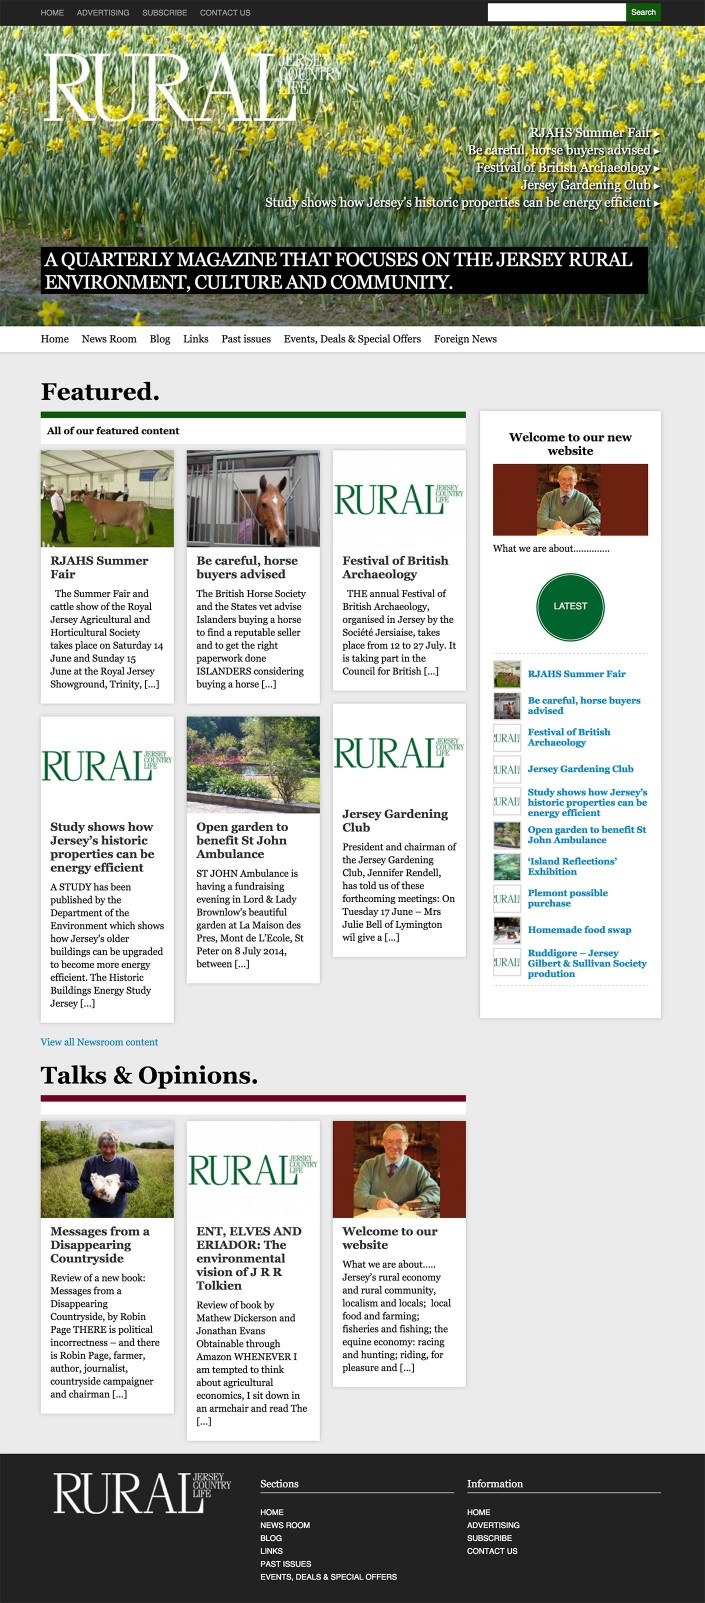 Rural-Jersey---A-quarterly-magazine-that-focuses-on-Jersey's-rural-environment,-culture-and-community